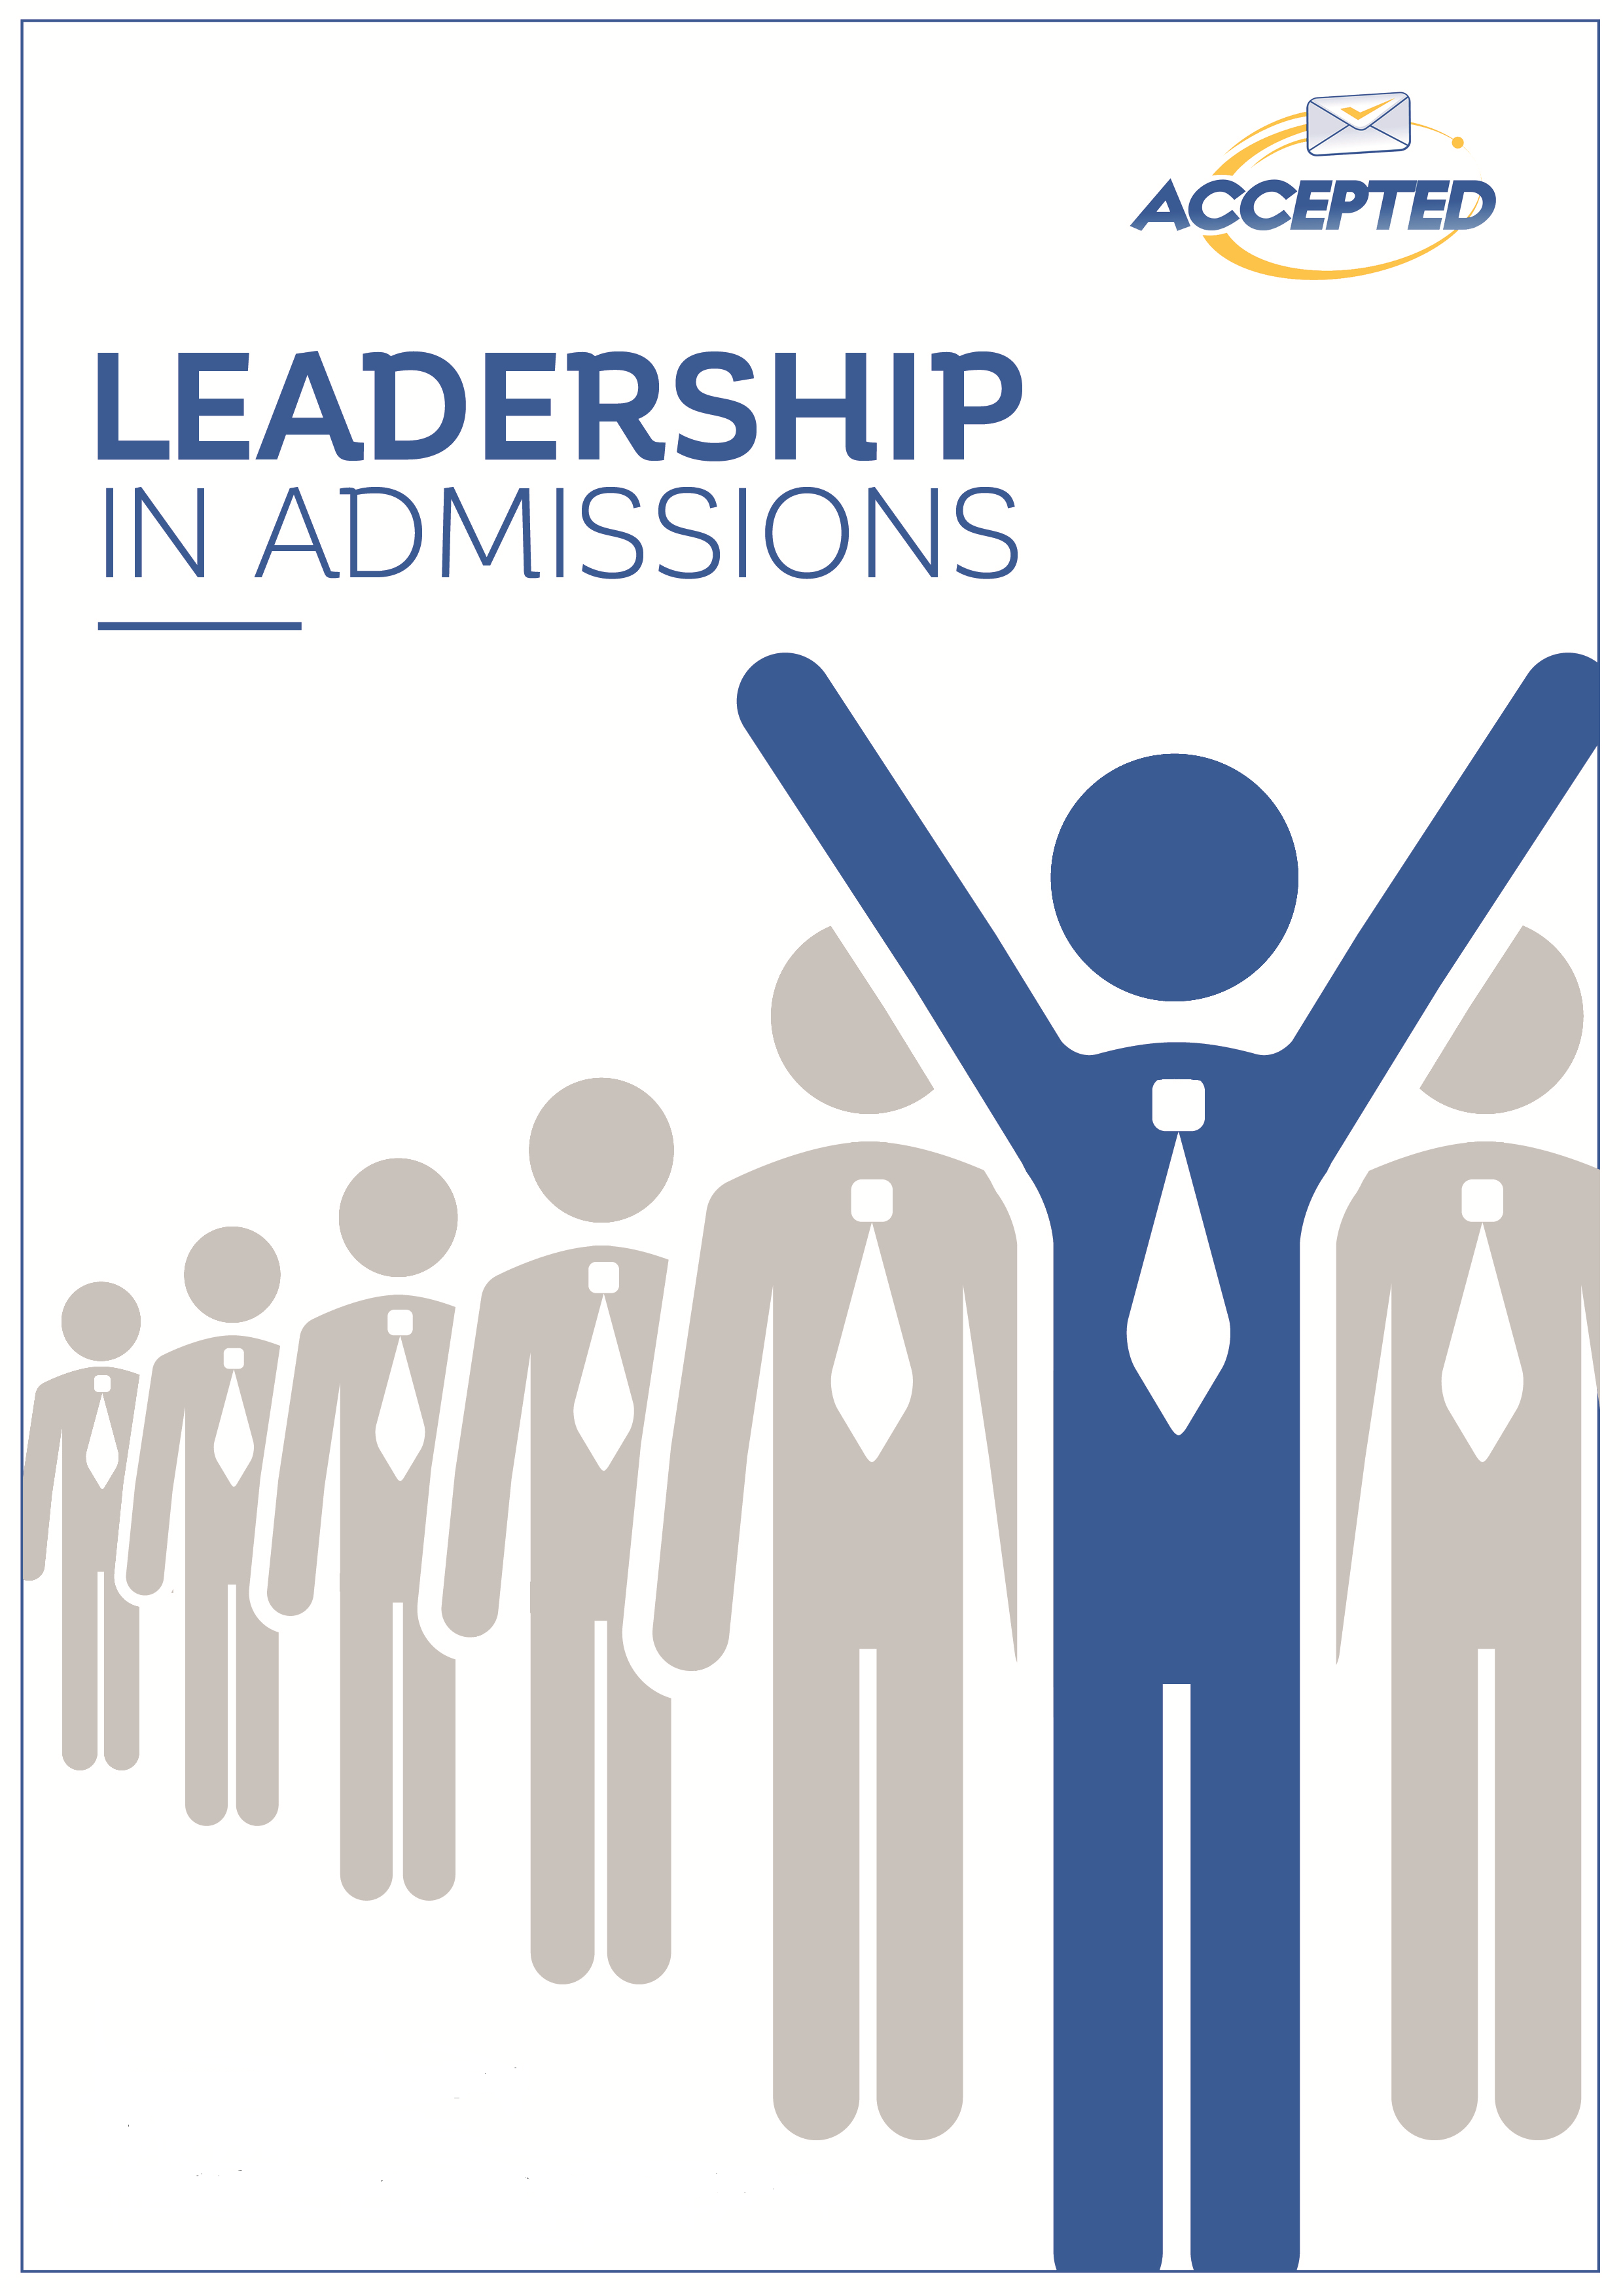 Leadership_in_admissions-2.png